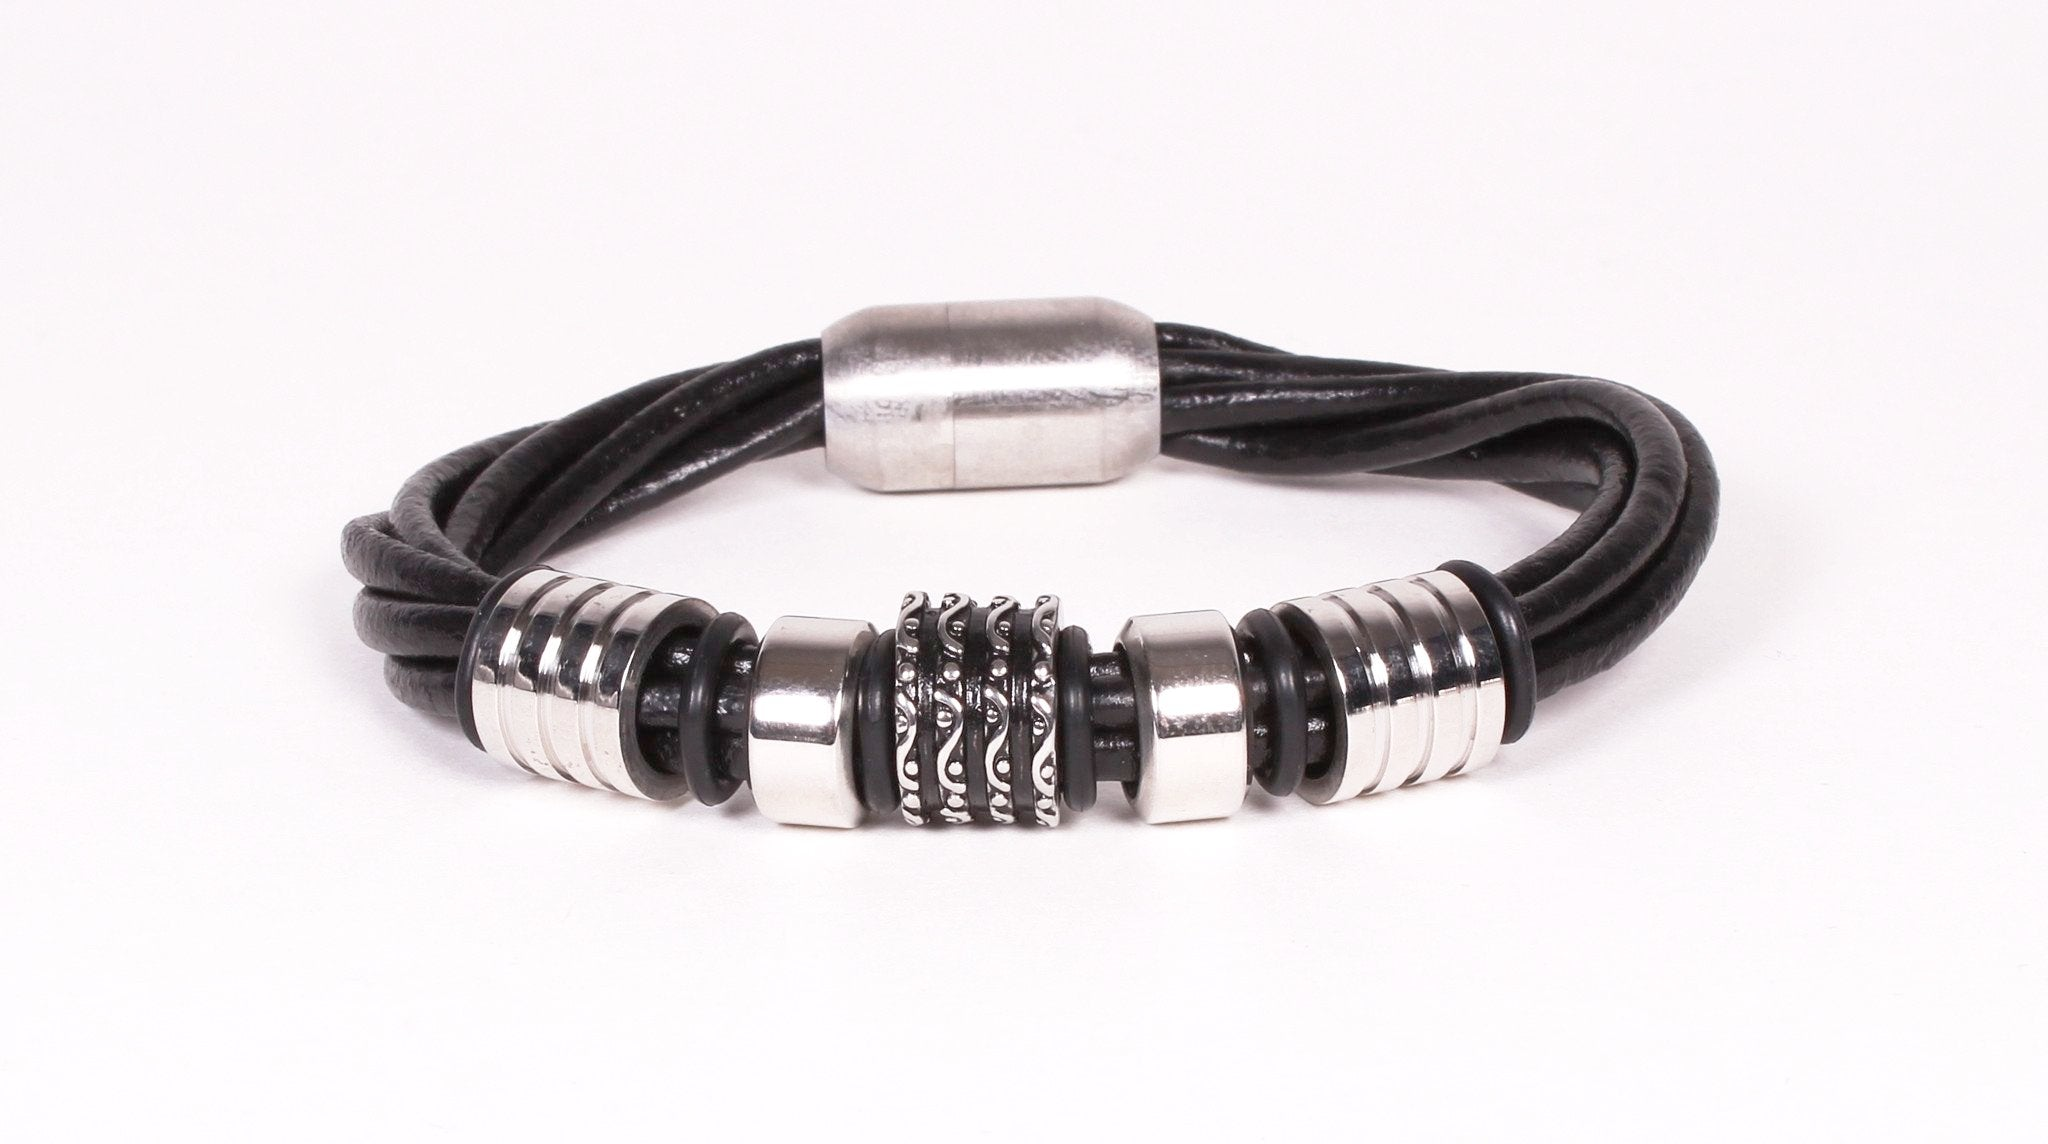 Black Leather and Stainless Steel Ring Bracelet